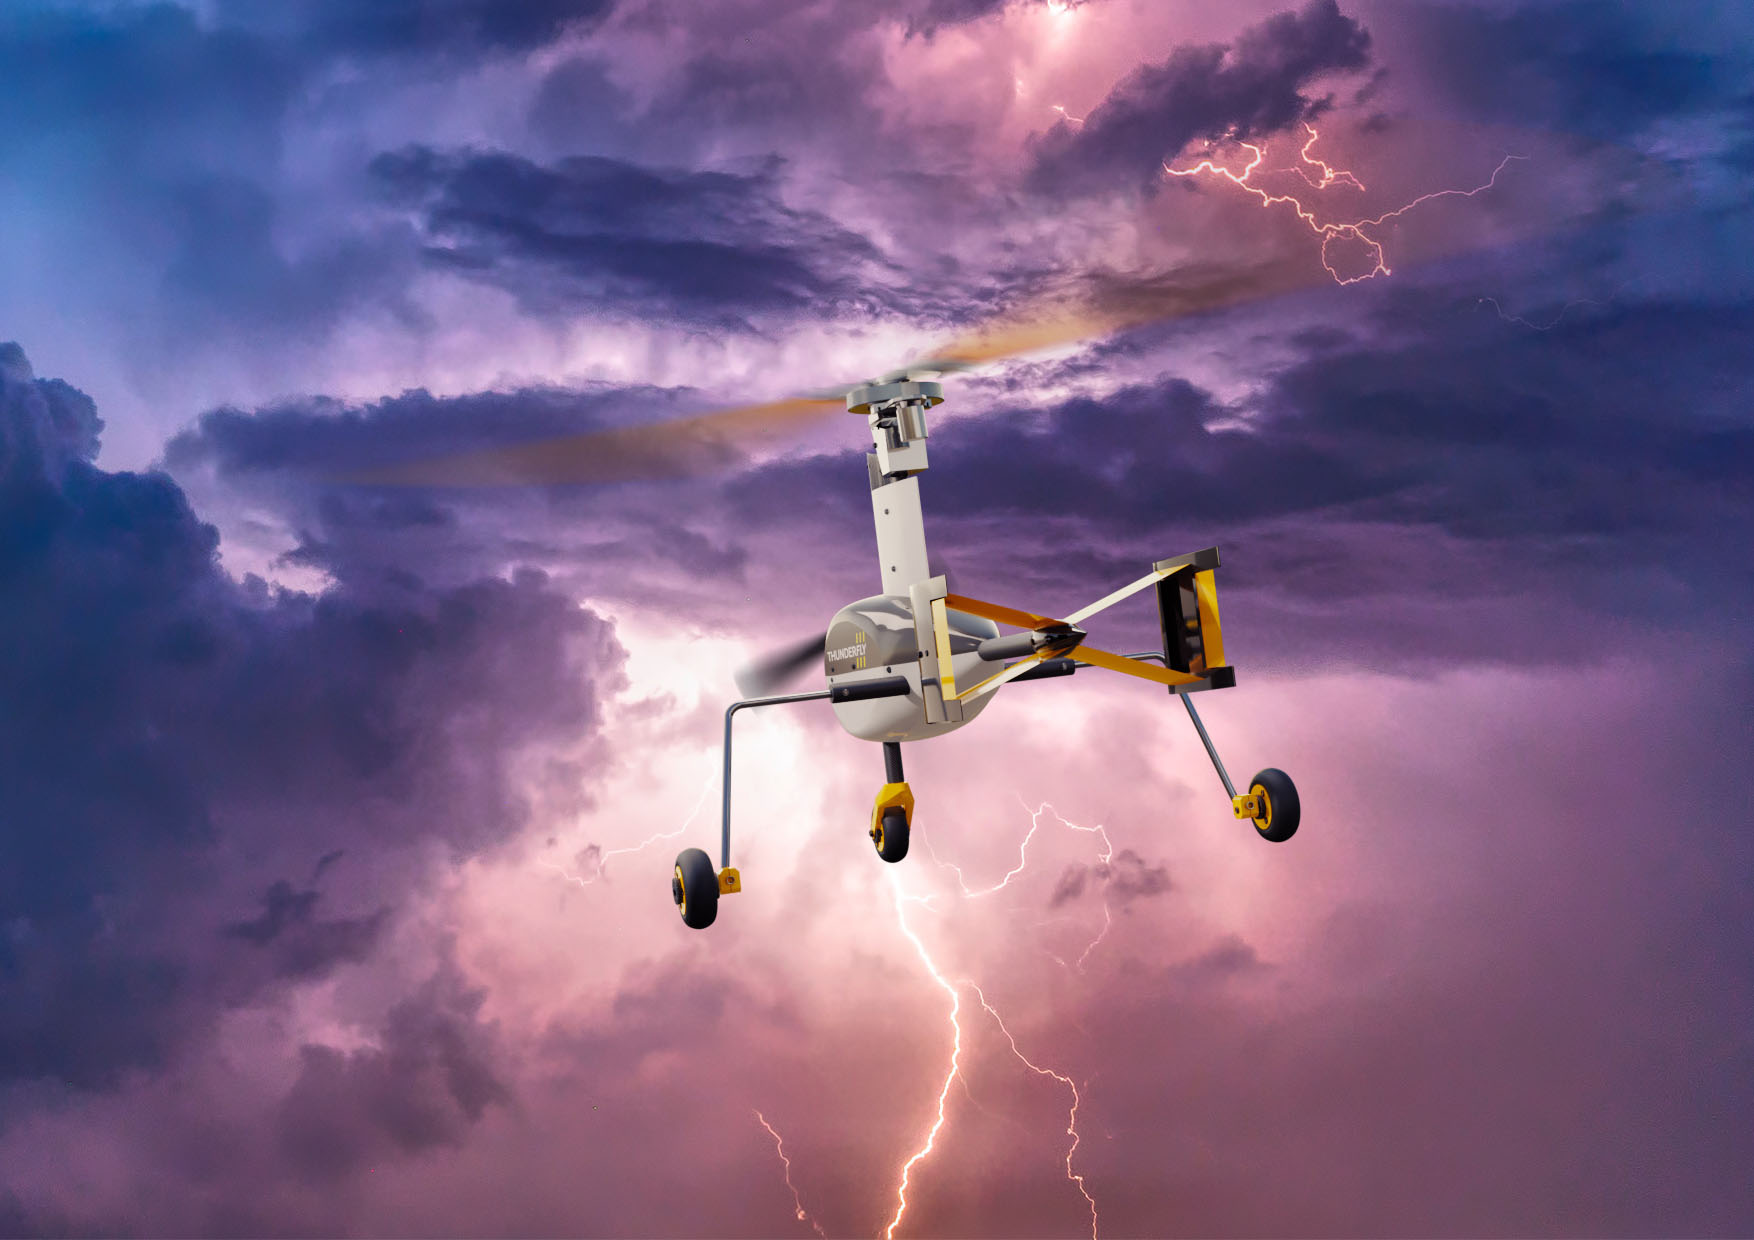 The TF-G1 is designed to withstand thunderstorms